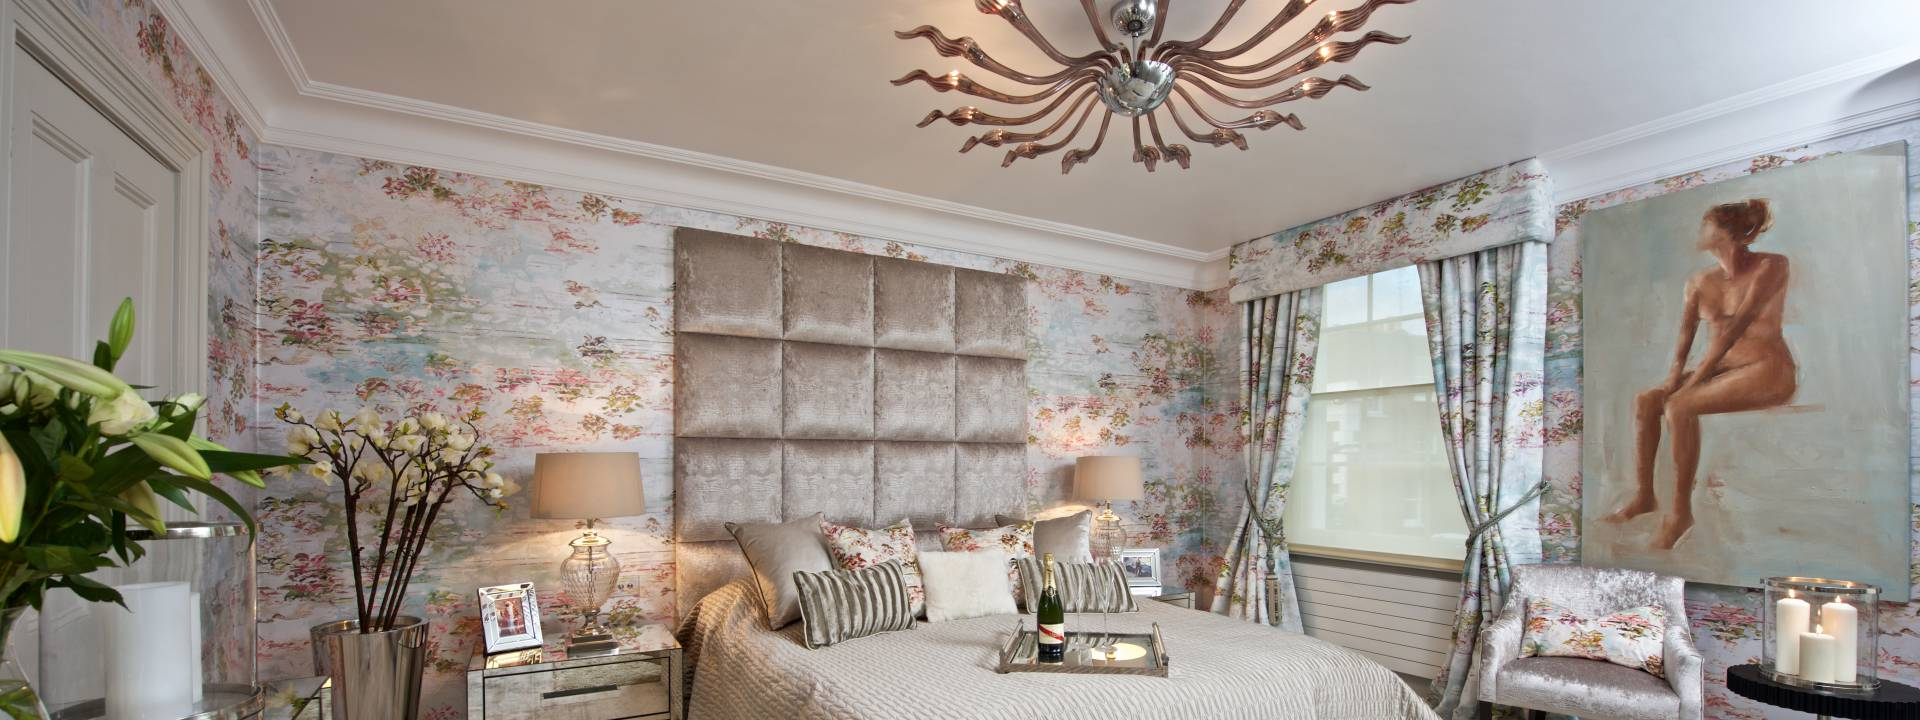 Exquisite Town-house.  Luxury bedroom. Taylor Interiors.